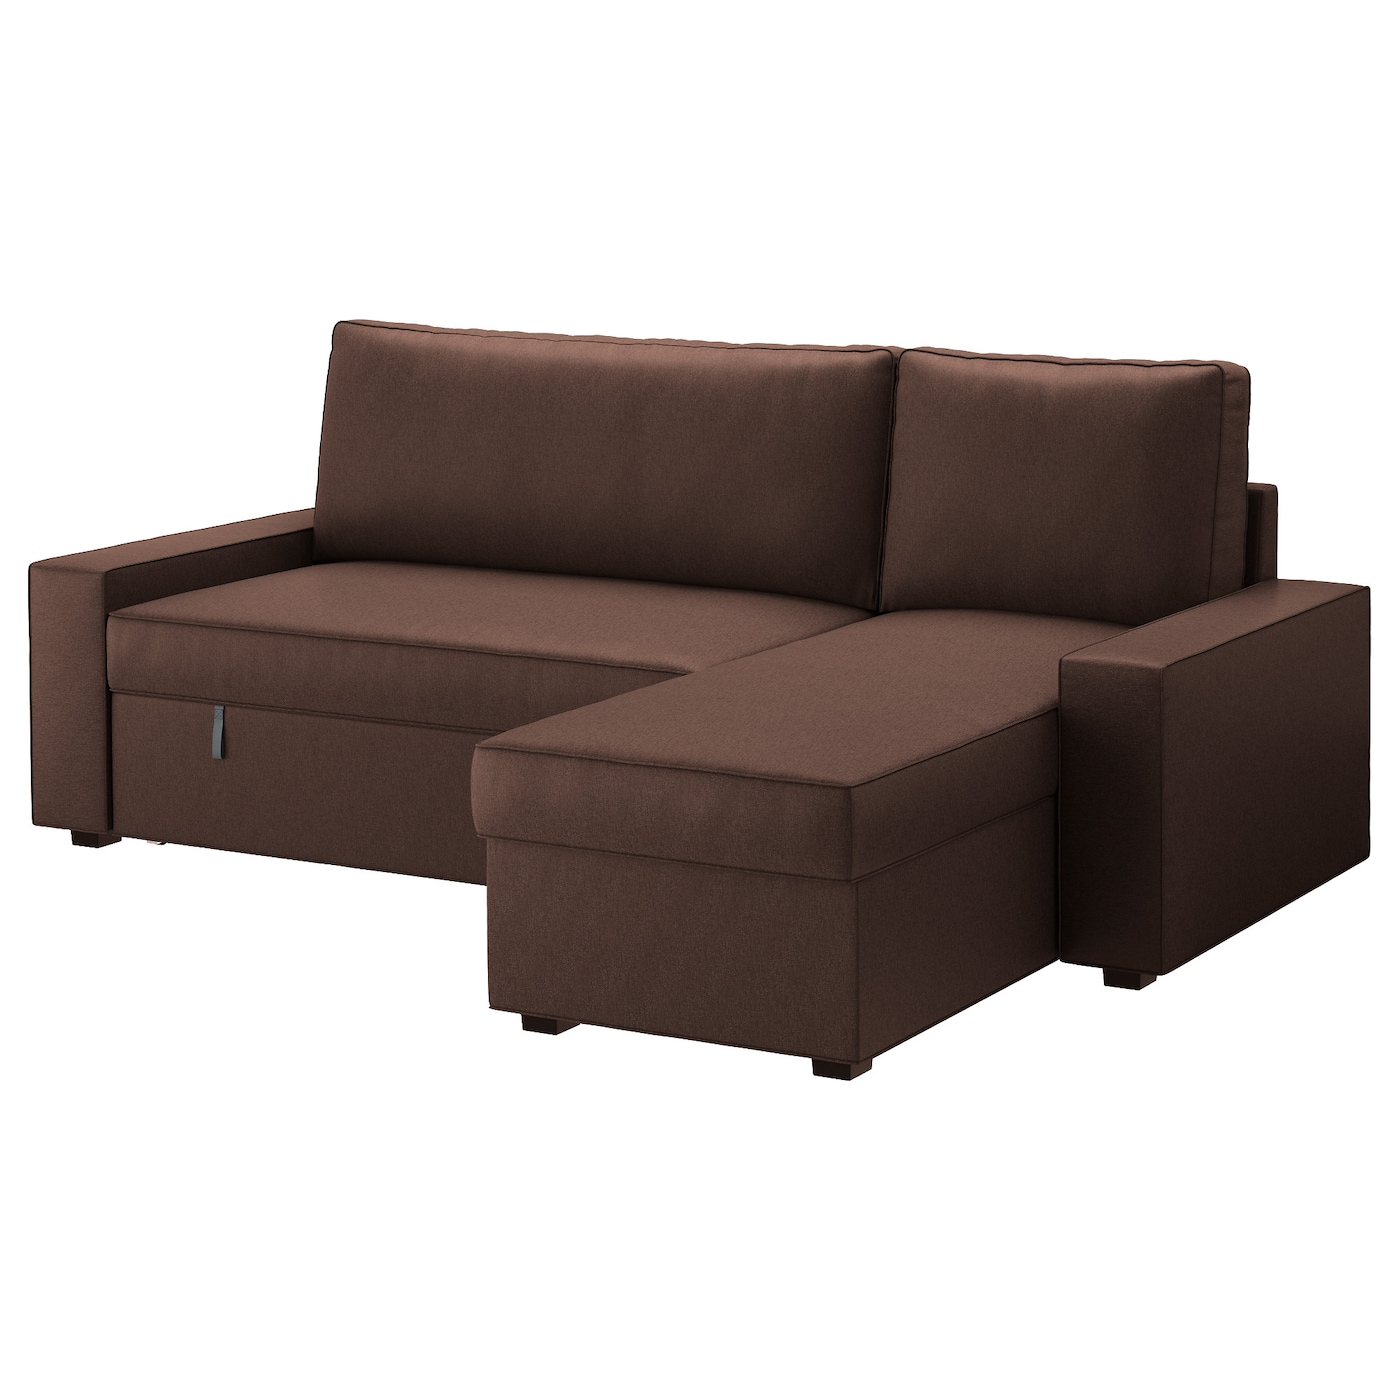 Vilasund sofa bed with chaise longue borred dark brown ikea - Sofa rinconera con chaise longue ...